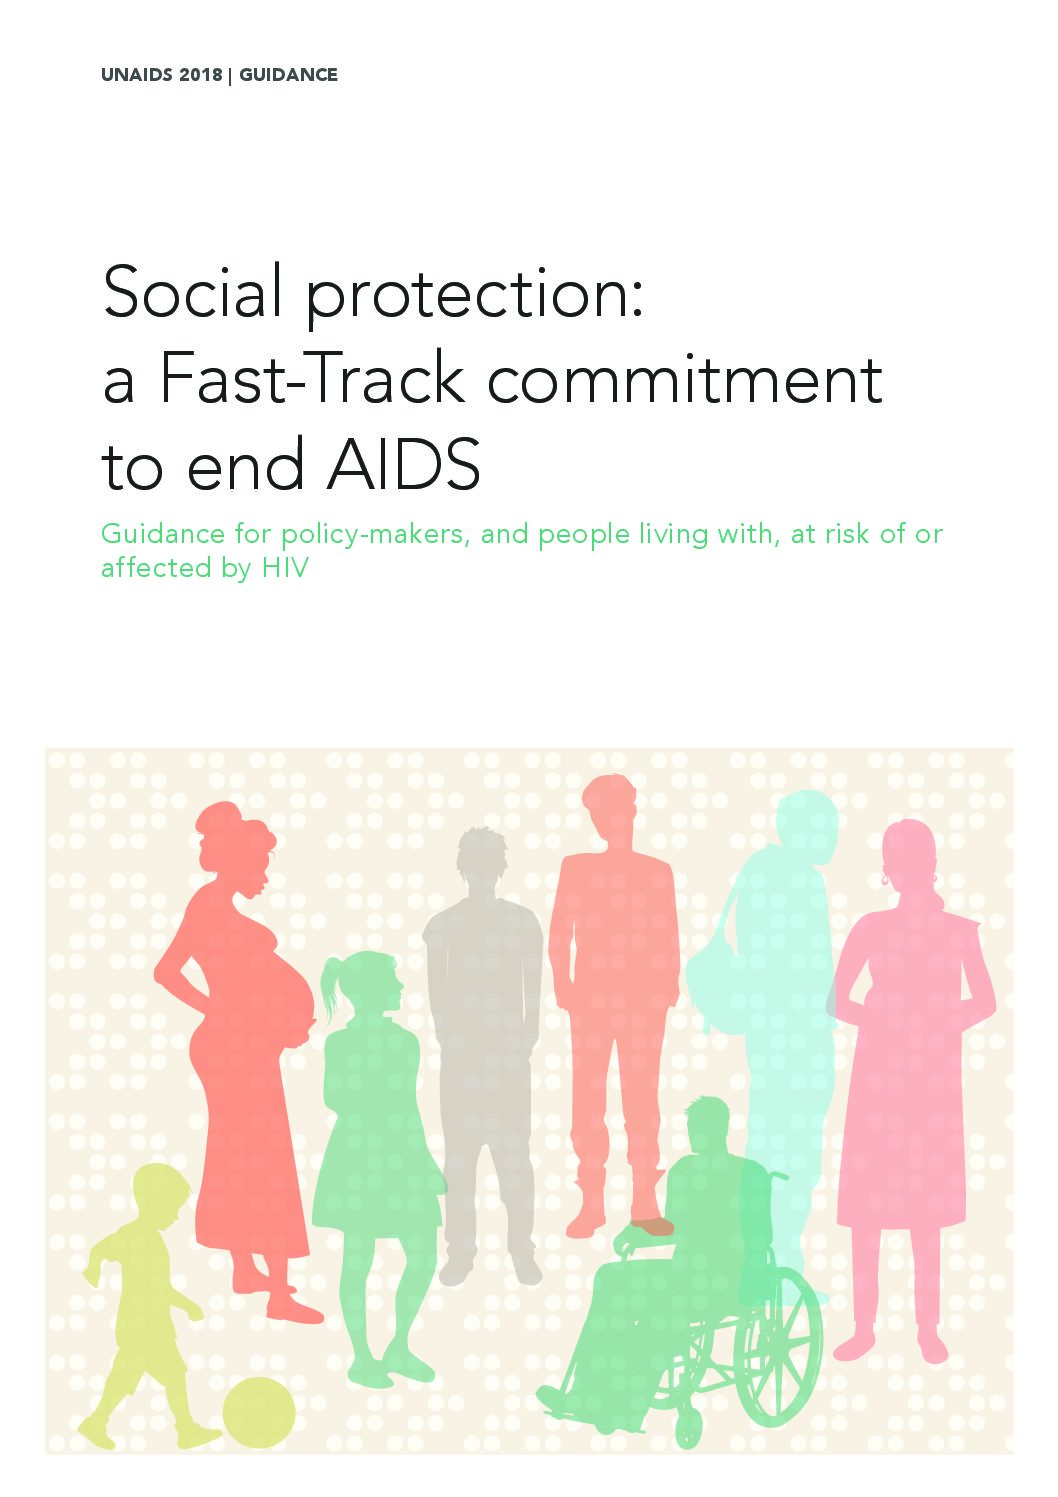 Social protection: a Fast-Track commitment to end AIDS — Guidance for policy-makers, and people living with, at risk of or affected by HIV